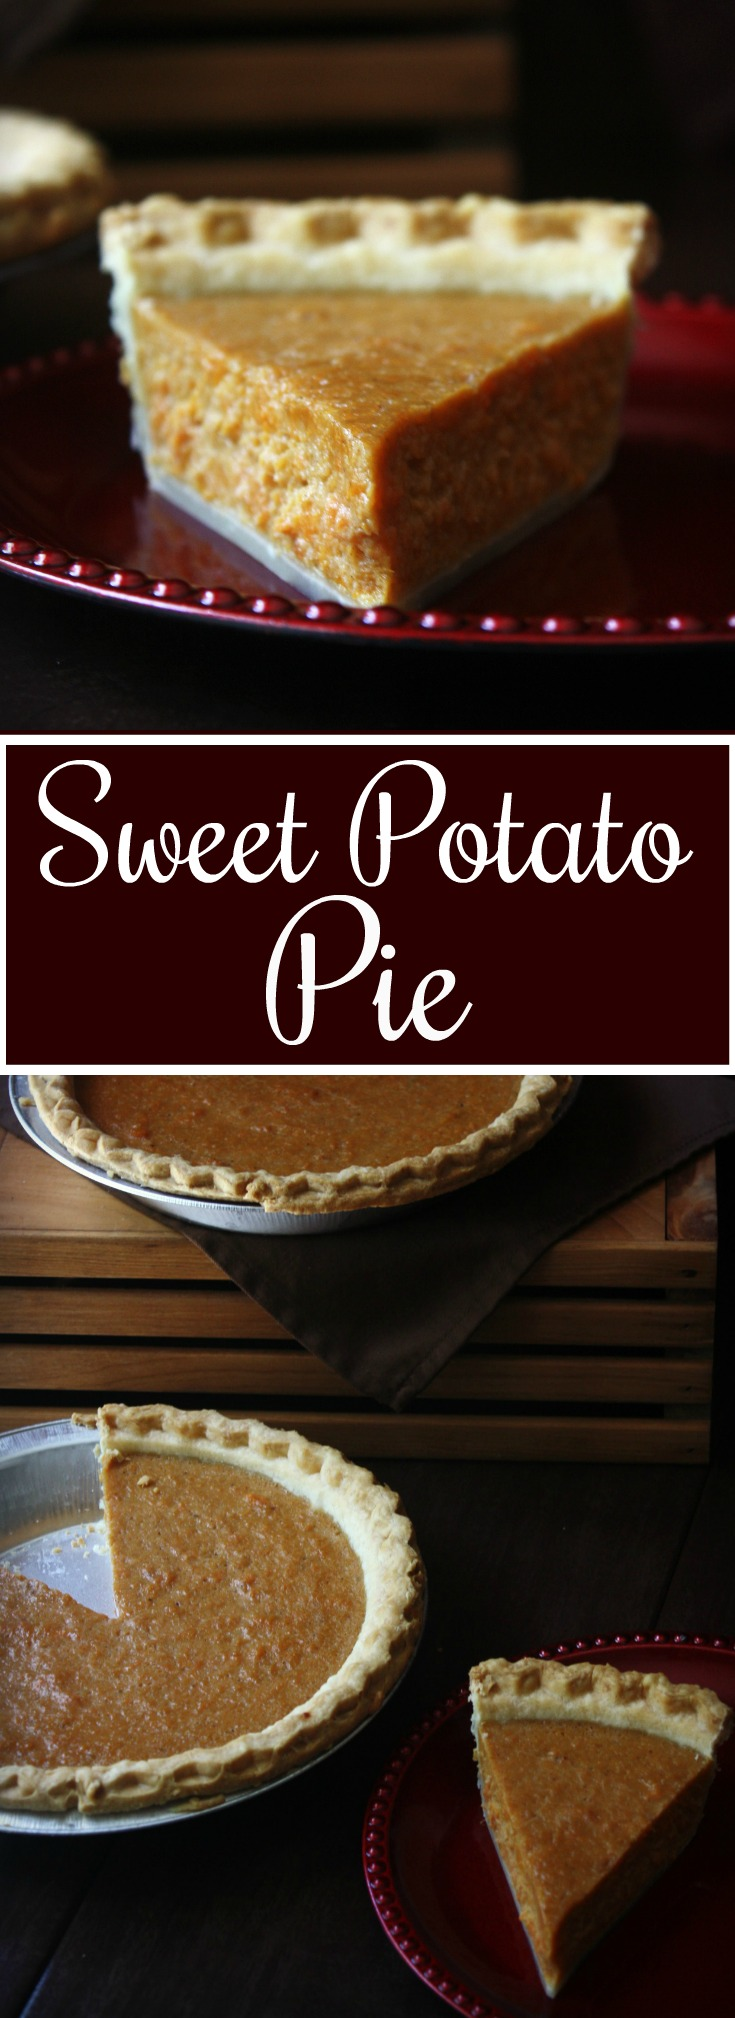 Sweet Potato Pie - Daily Appetite